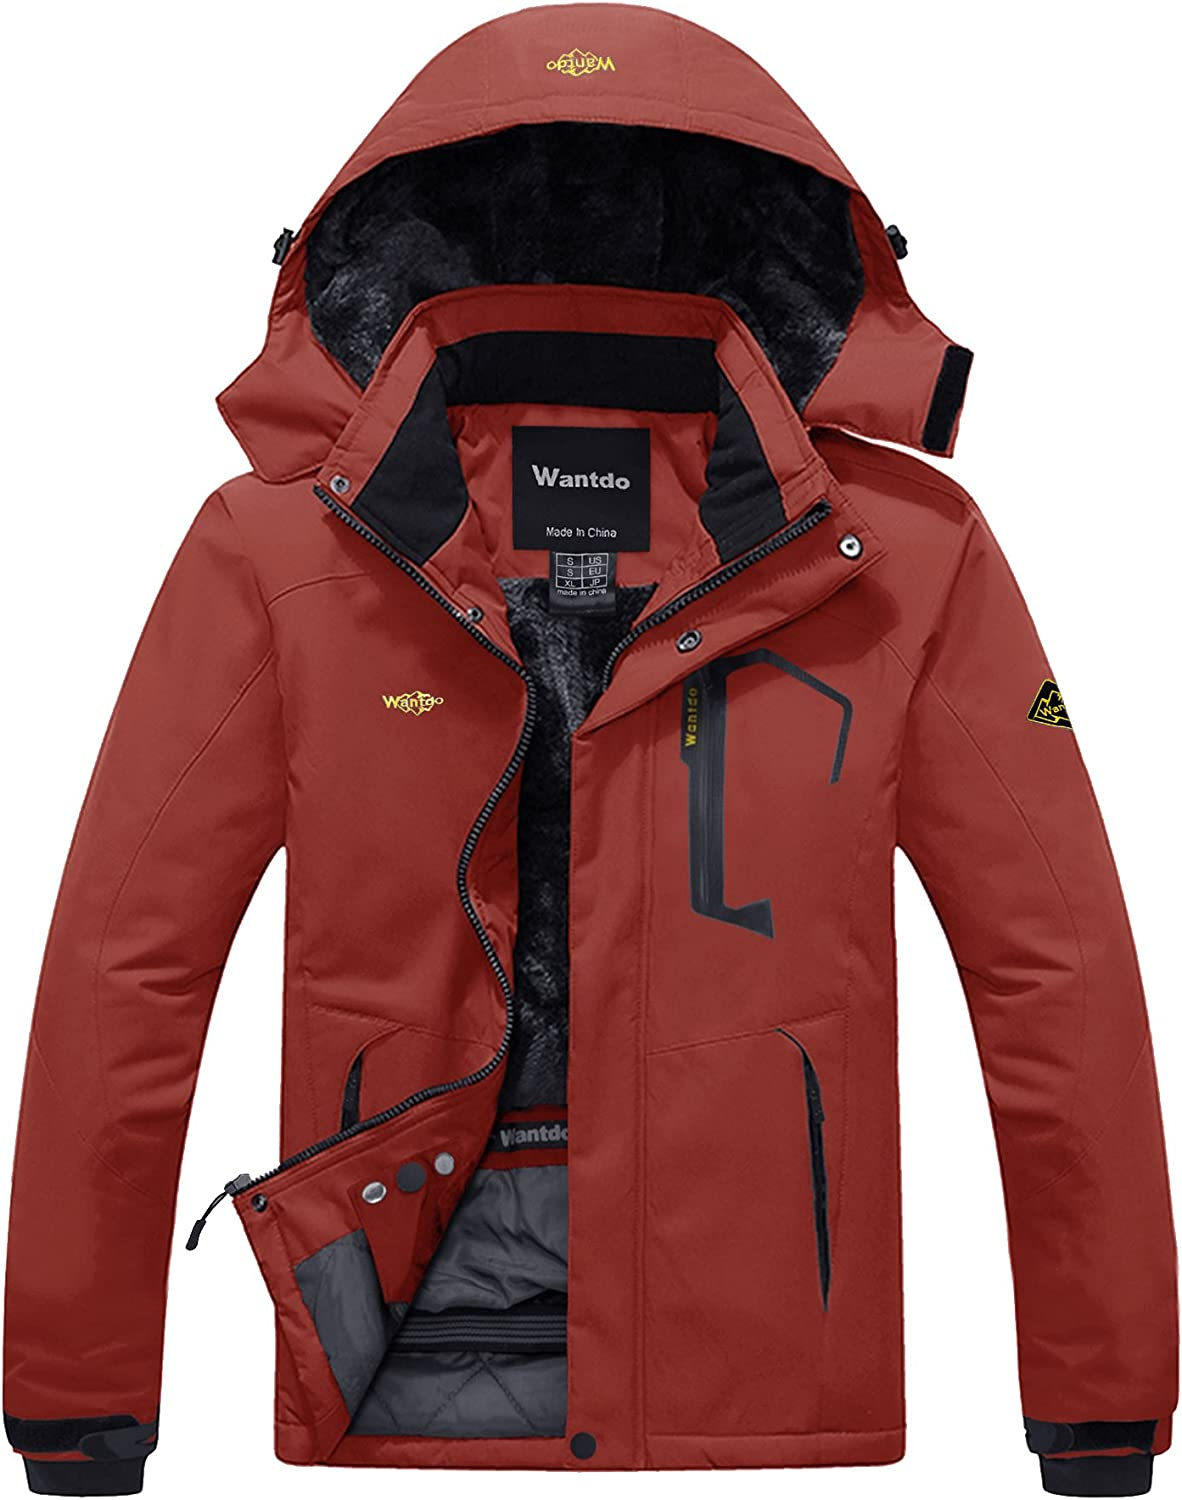 Wantdo Men's Mountain Waterproof Ski Jacket Windproof Rain Jacket Winter Warm Snow Coat